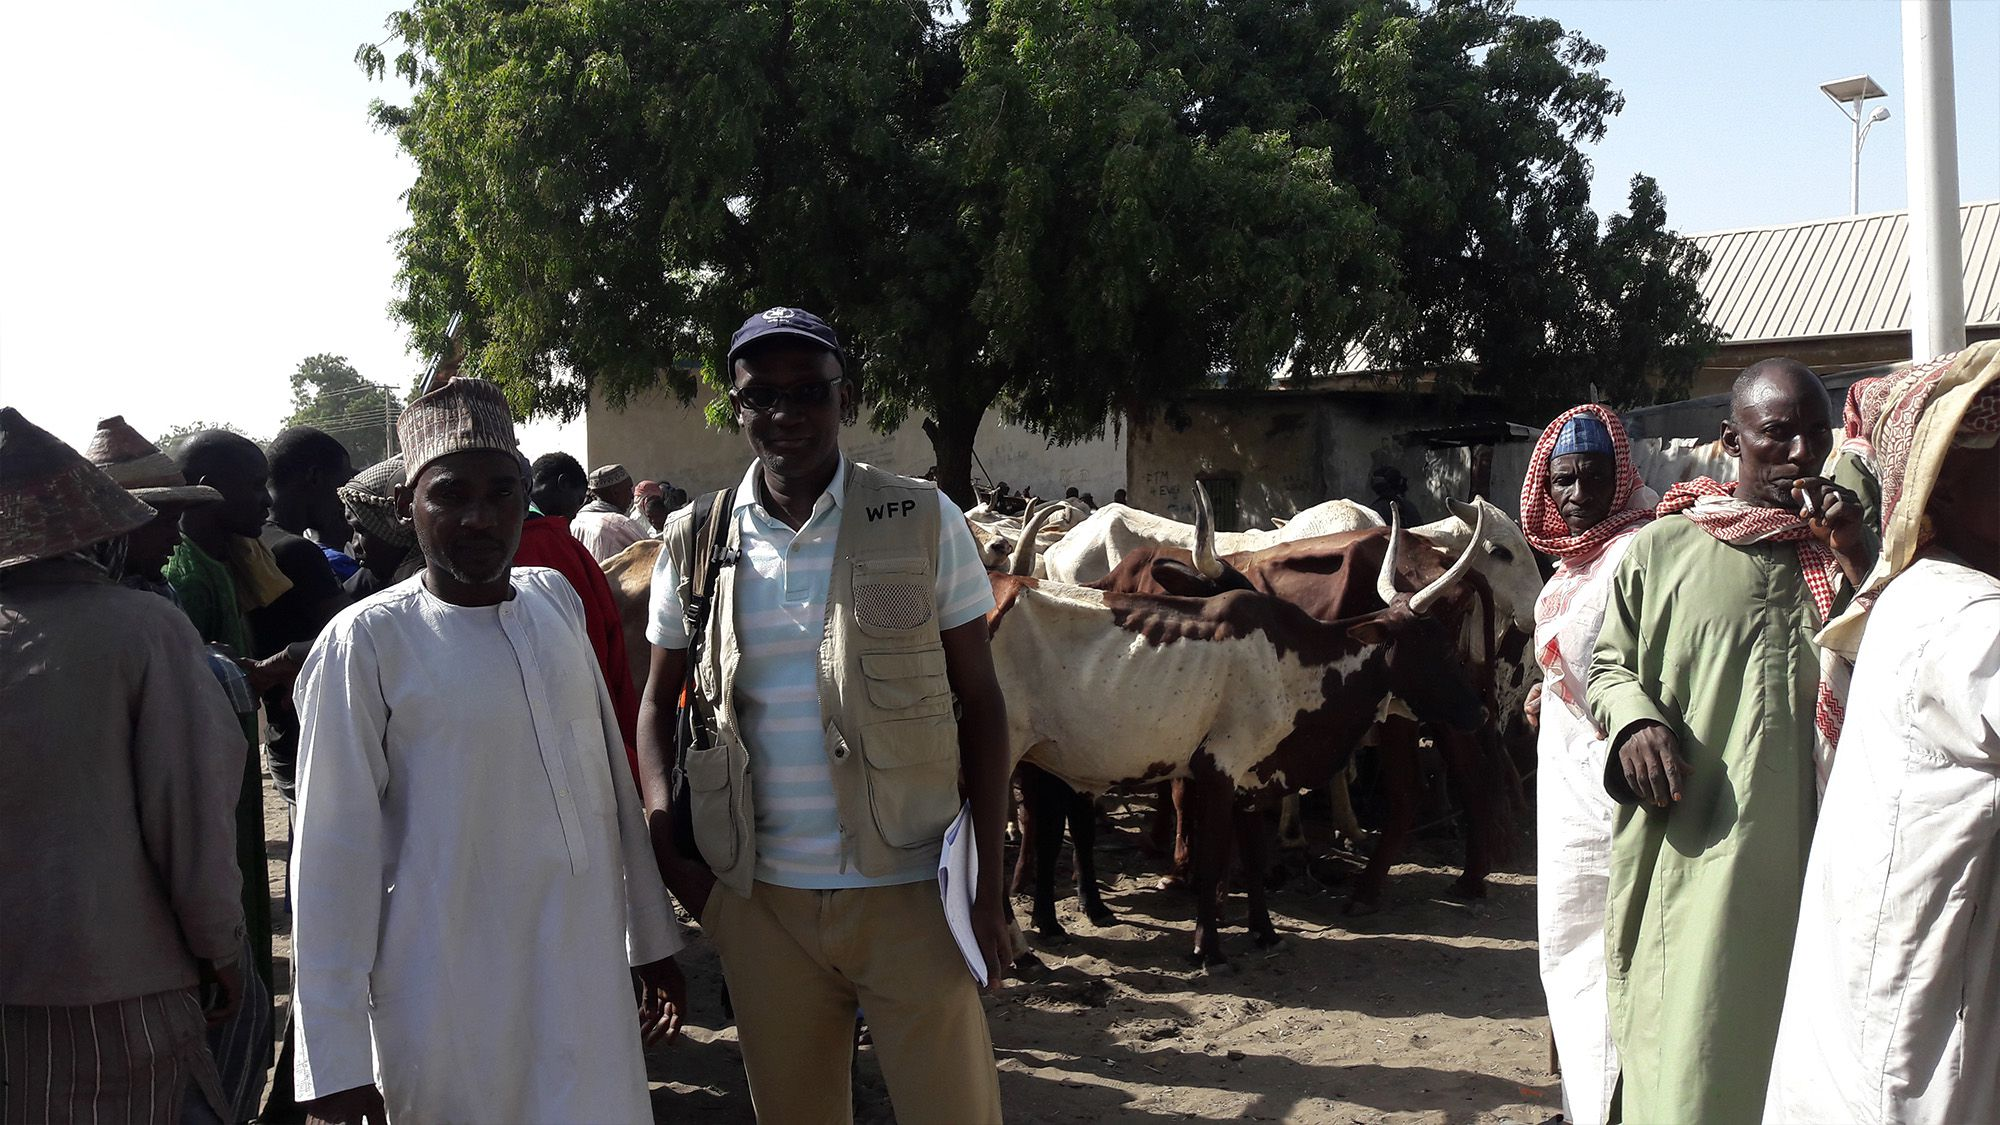 WFP's Moustapha Toure poses alongside a survey respondent at a cattle market outside Maiduguri, Nigeria. Photo Credit: WFP/Amadou Baraze